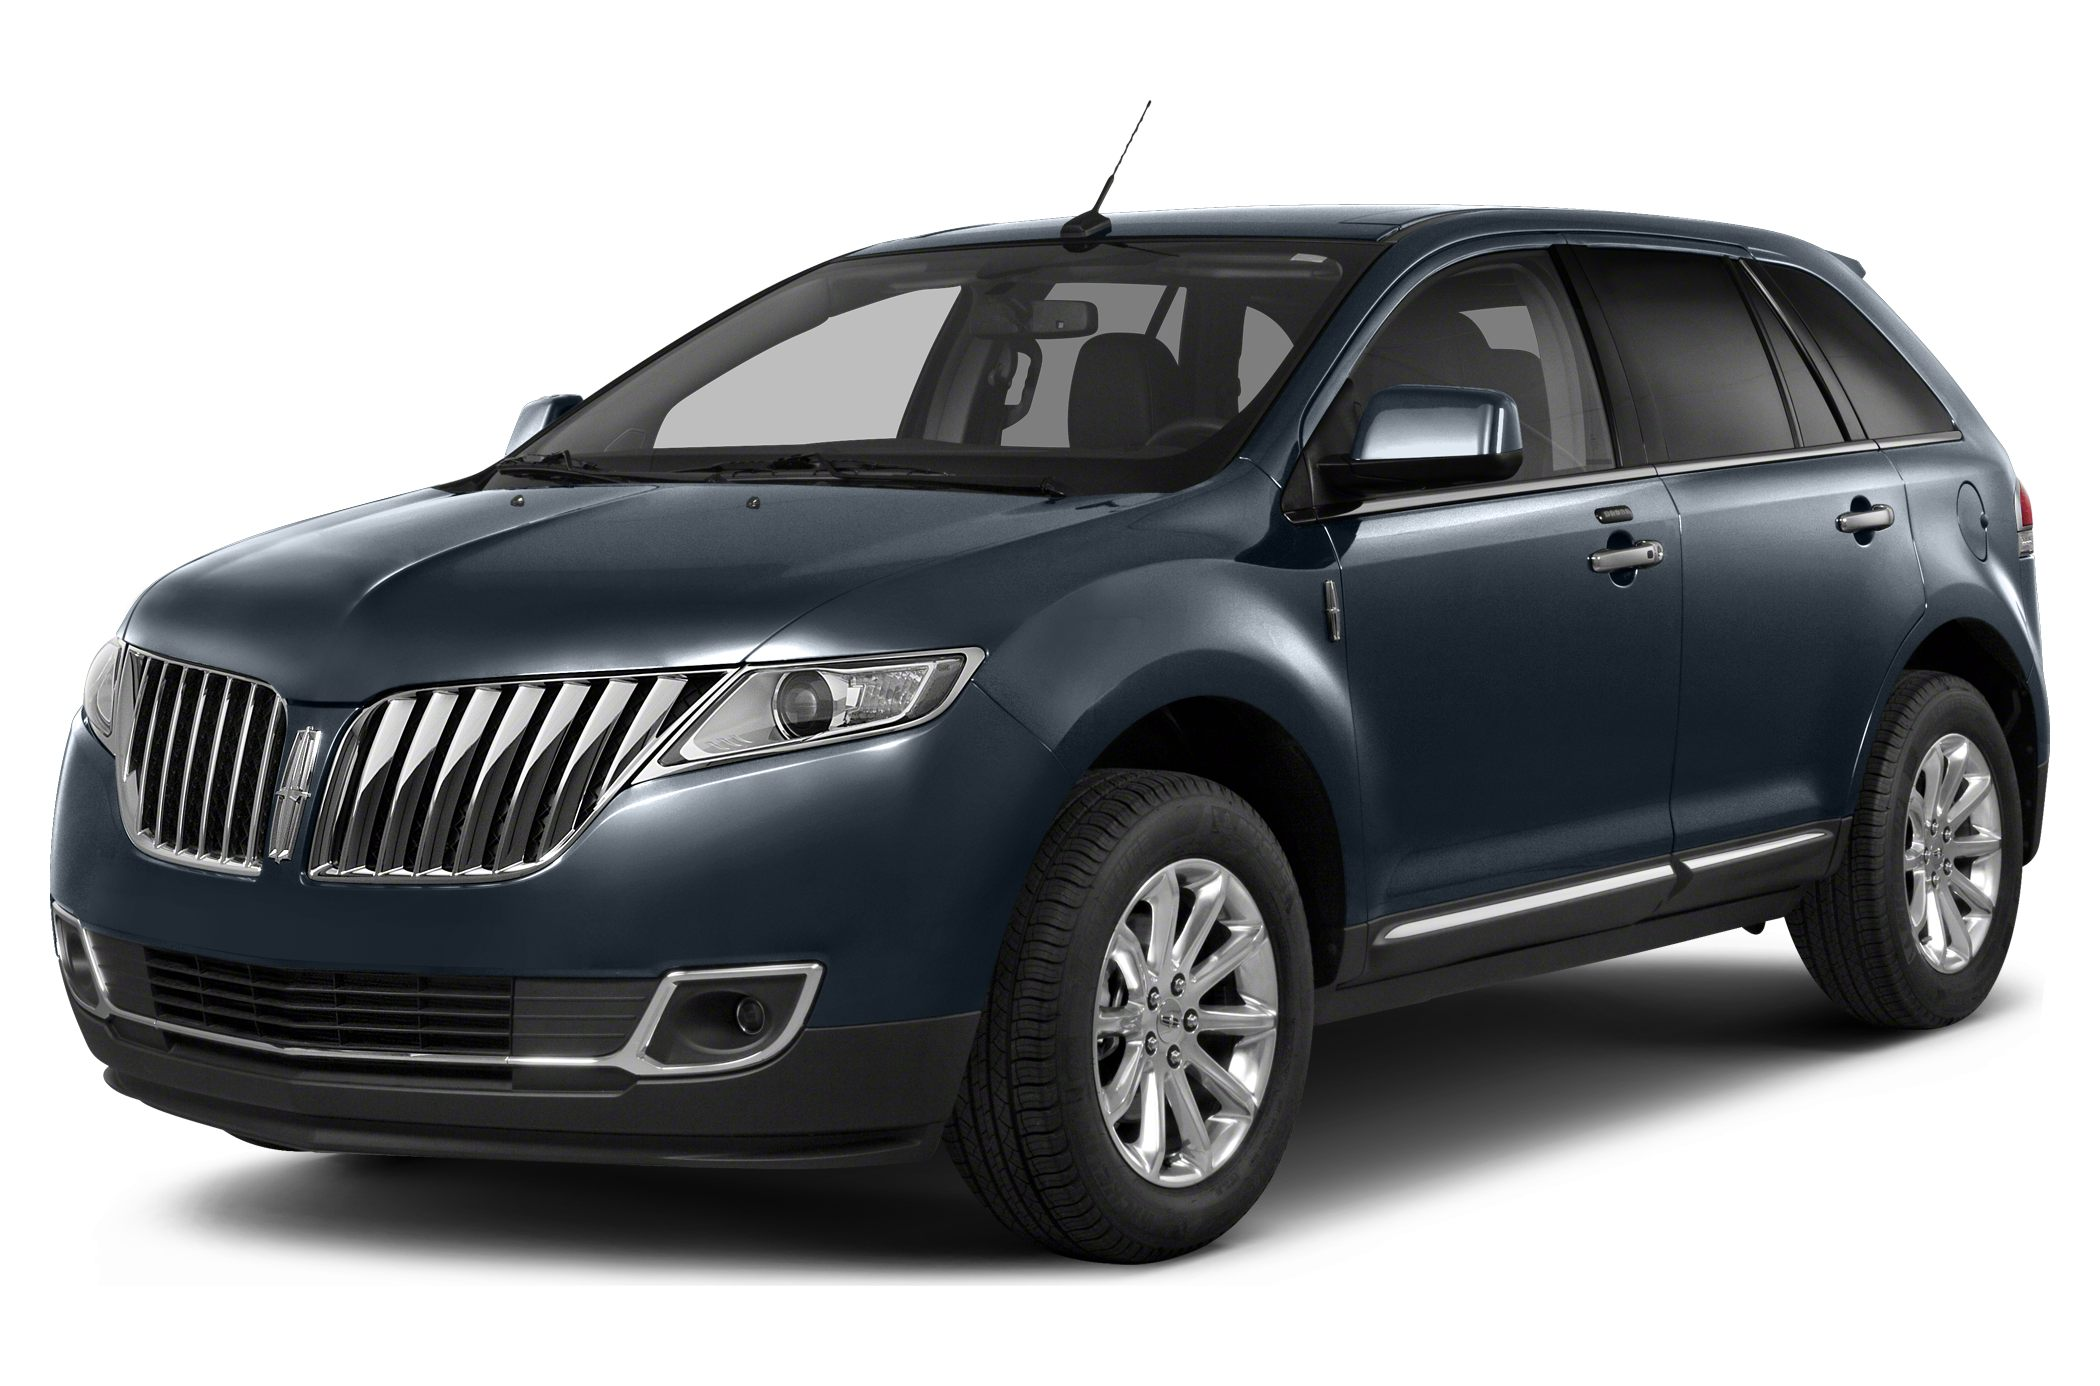 2013 Lincoln MKX Base SUV for sale in Washington for $34,752 with 11,583 miles